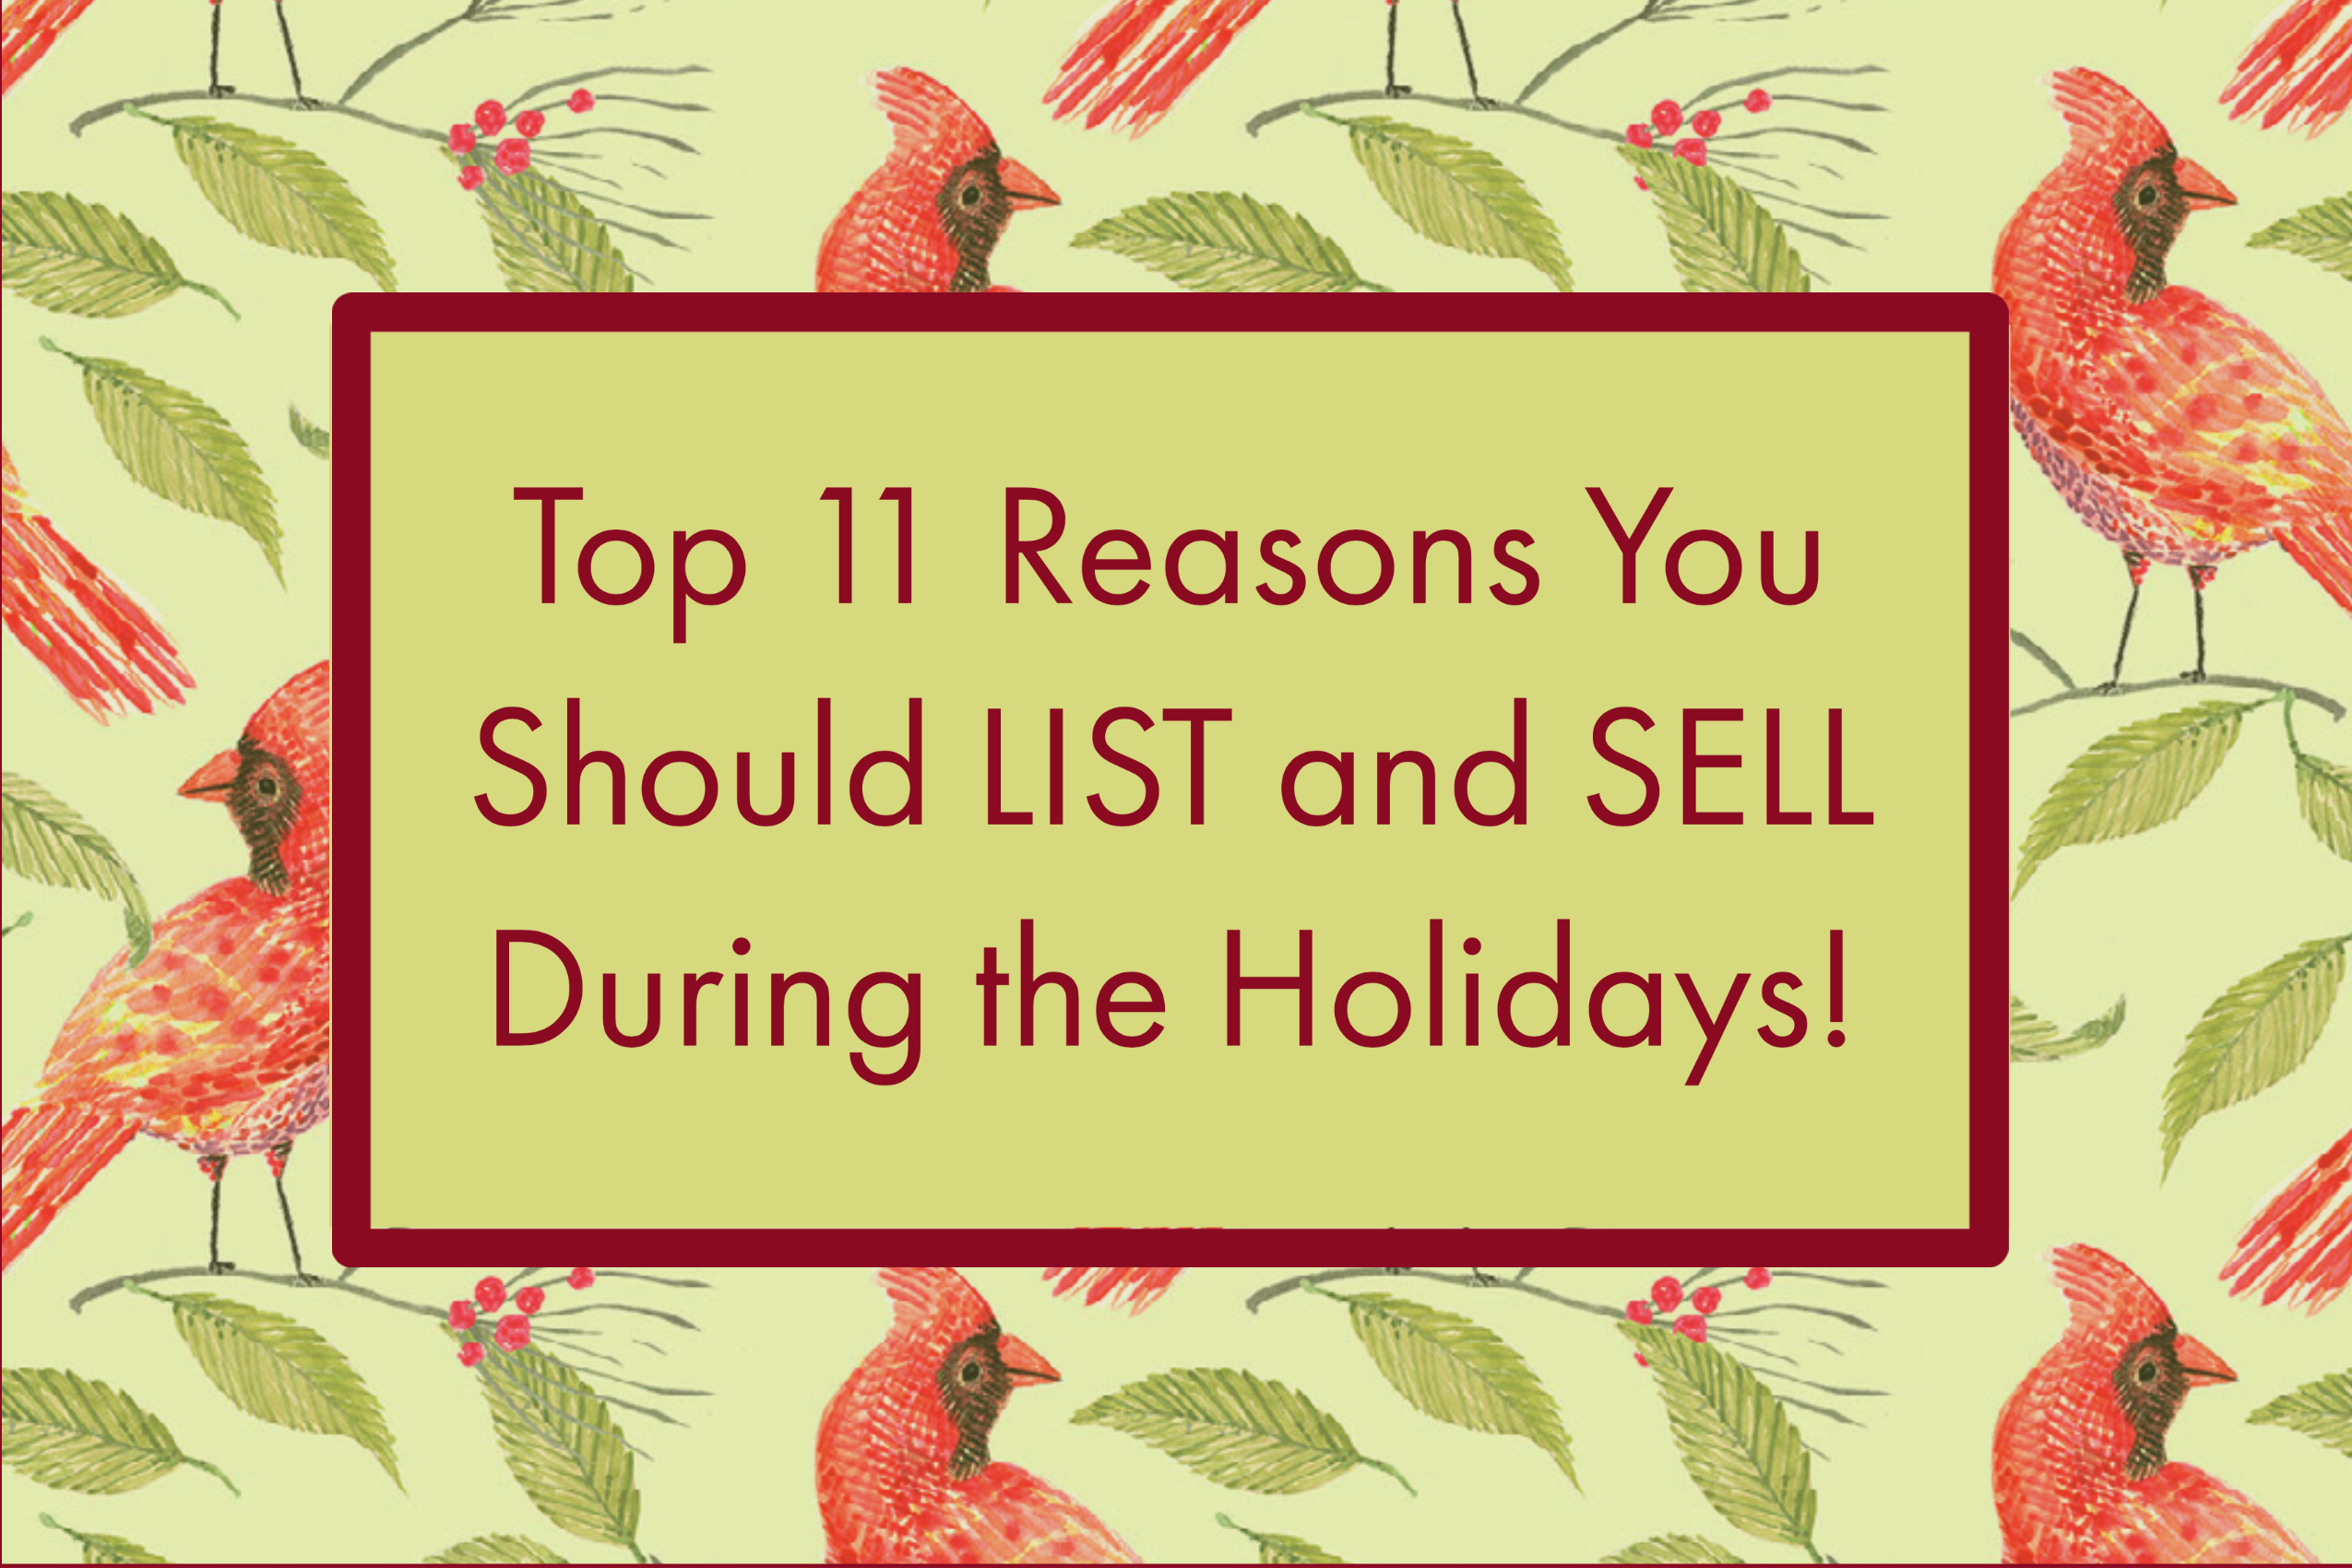 Top 11 Reasons You Should LIST and SELL During the Holidays